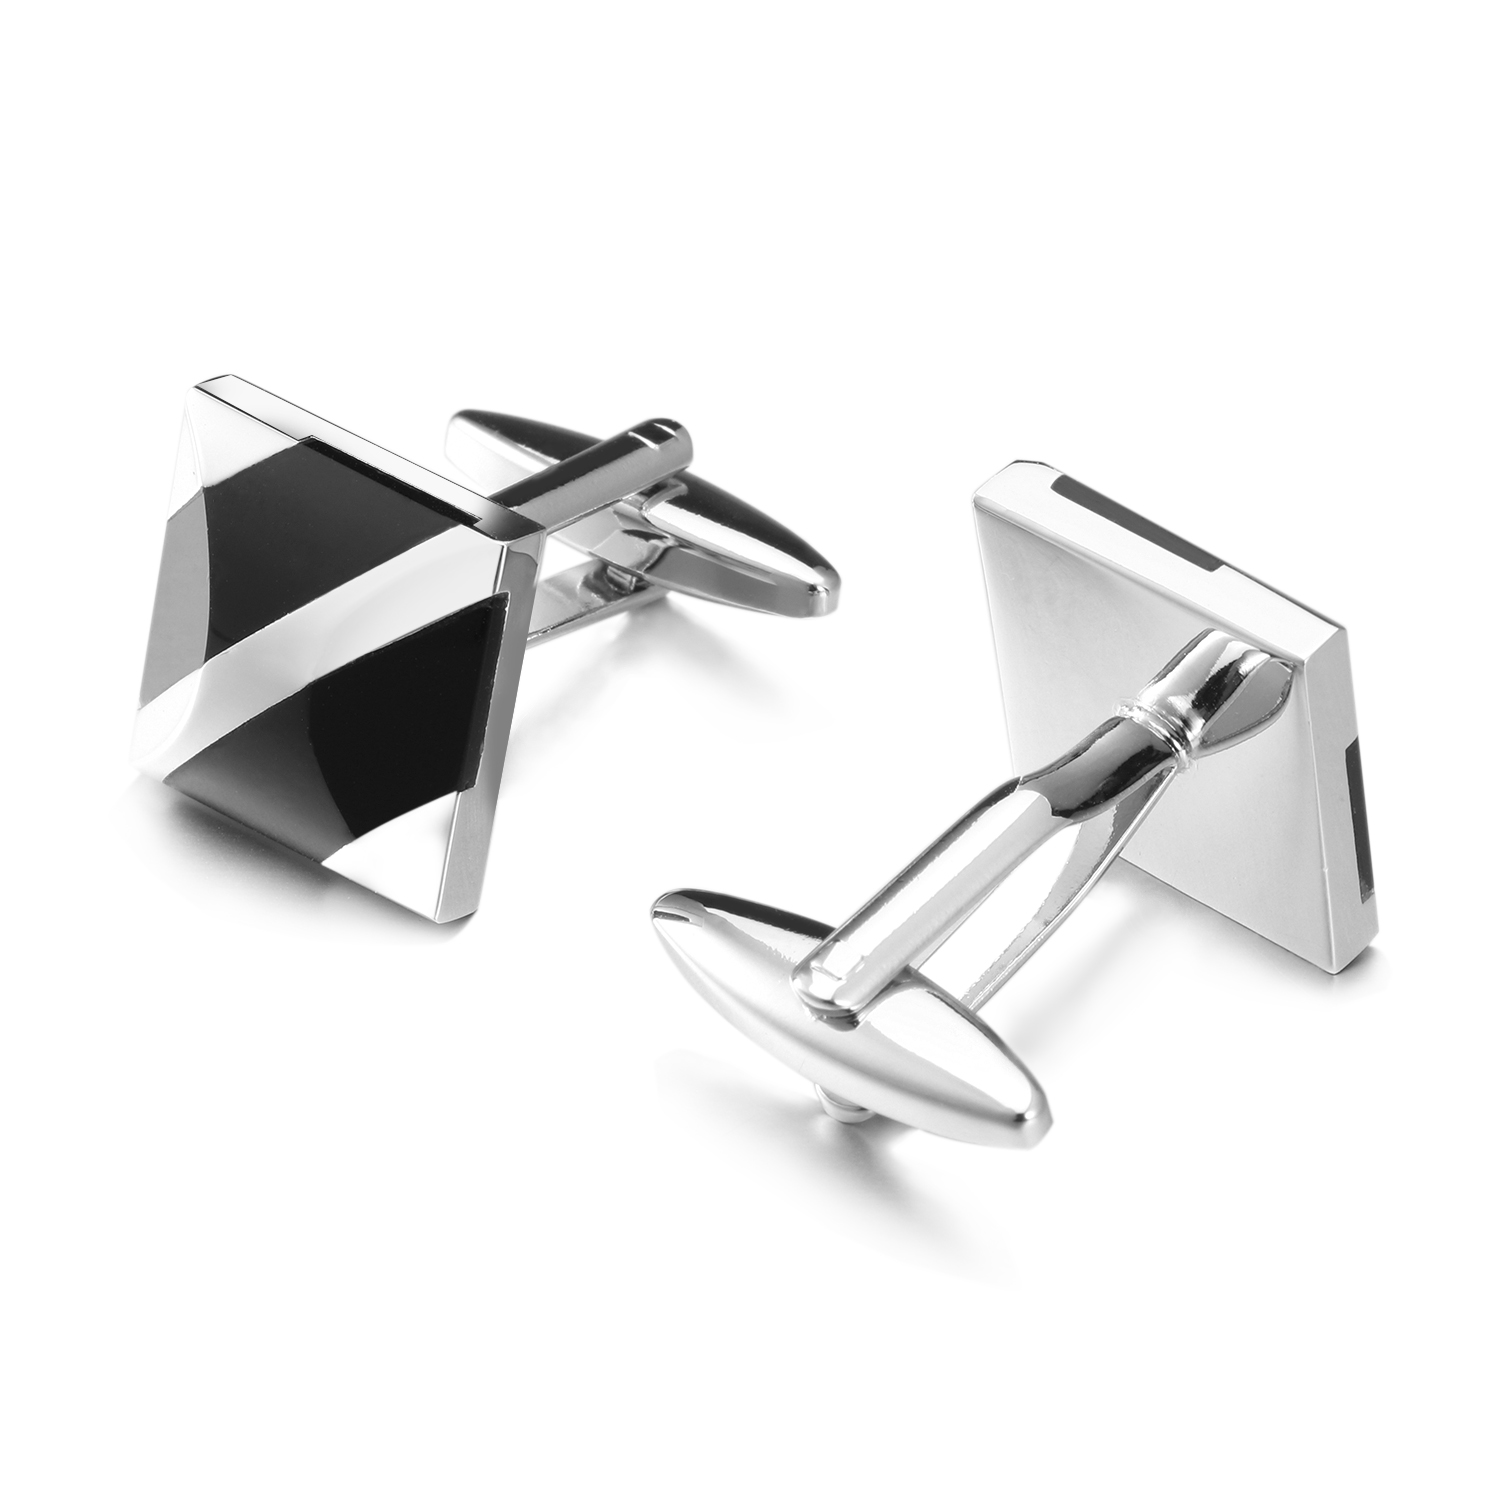 OB Jewelry-Wholesale Price Men Cufflinks Bubble Shaped Men Jewelry Rhodium Plated Metal Cufflinks Shirts Men From China